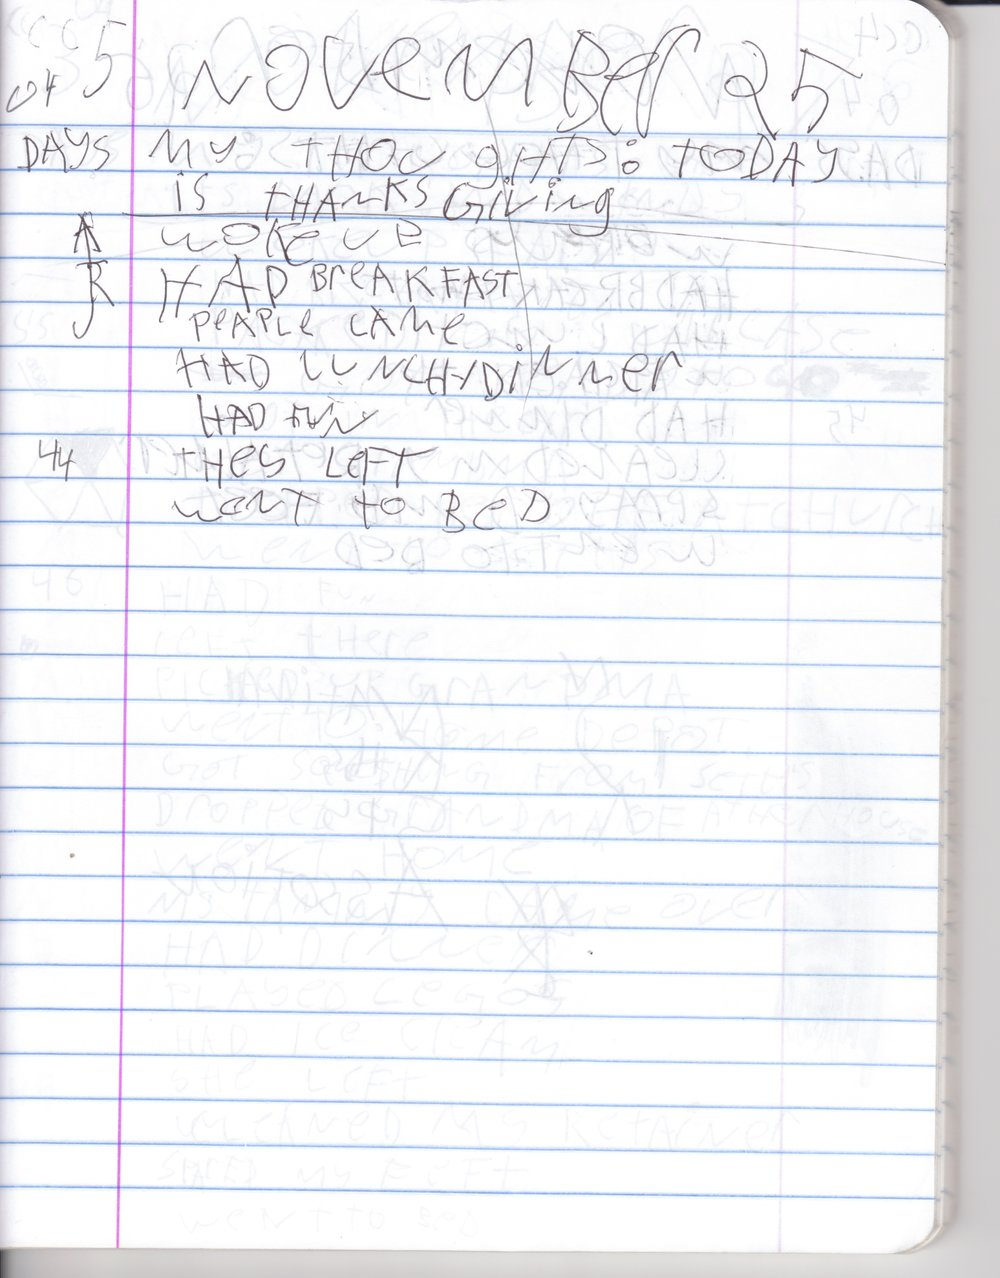 my first diary-log_Page_047.jpg